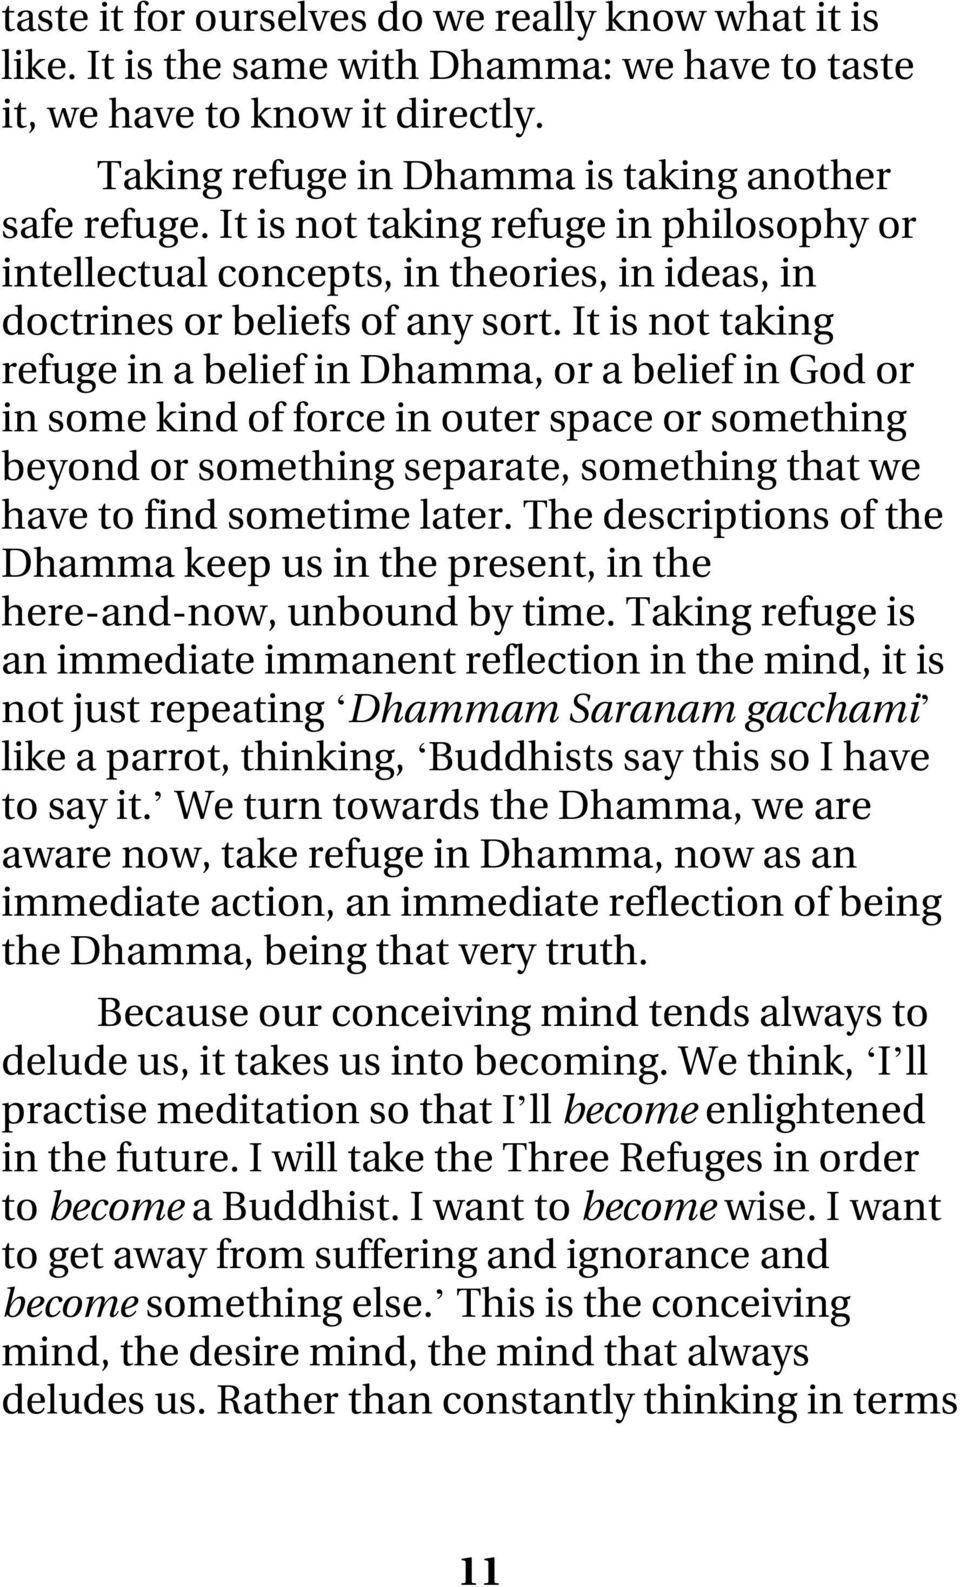 It is not taking refuge in a belief in Dhamma, or a belief in God or in some kind of force in outer space or something beyond or something separate, something that we have to find sometime later.